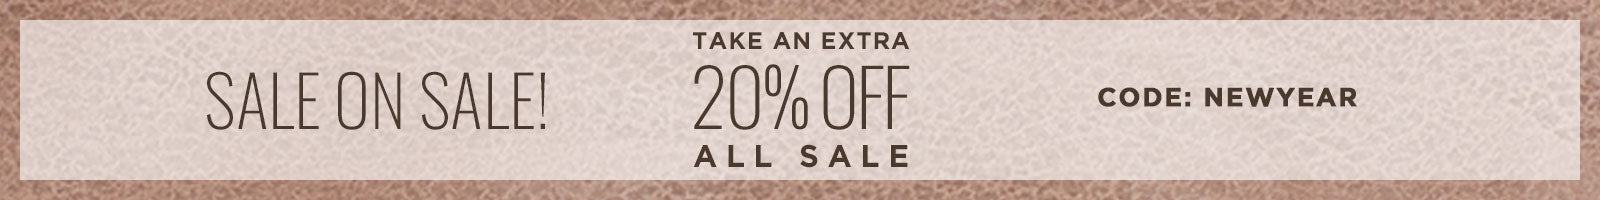 New Styles Added To Sale! Take An Extra 20% Off, with code NEWYEAR